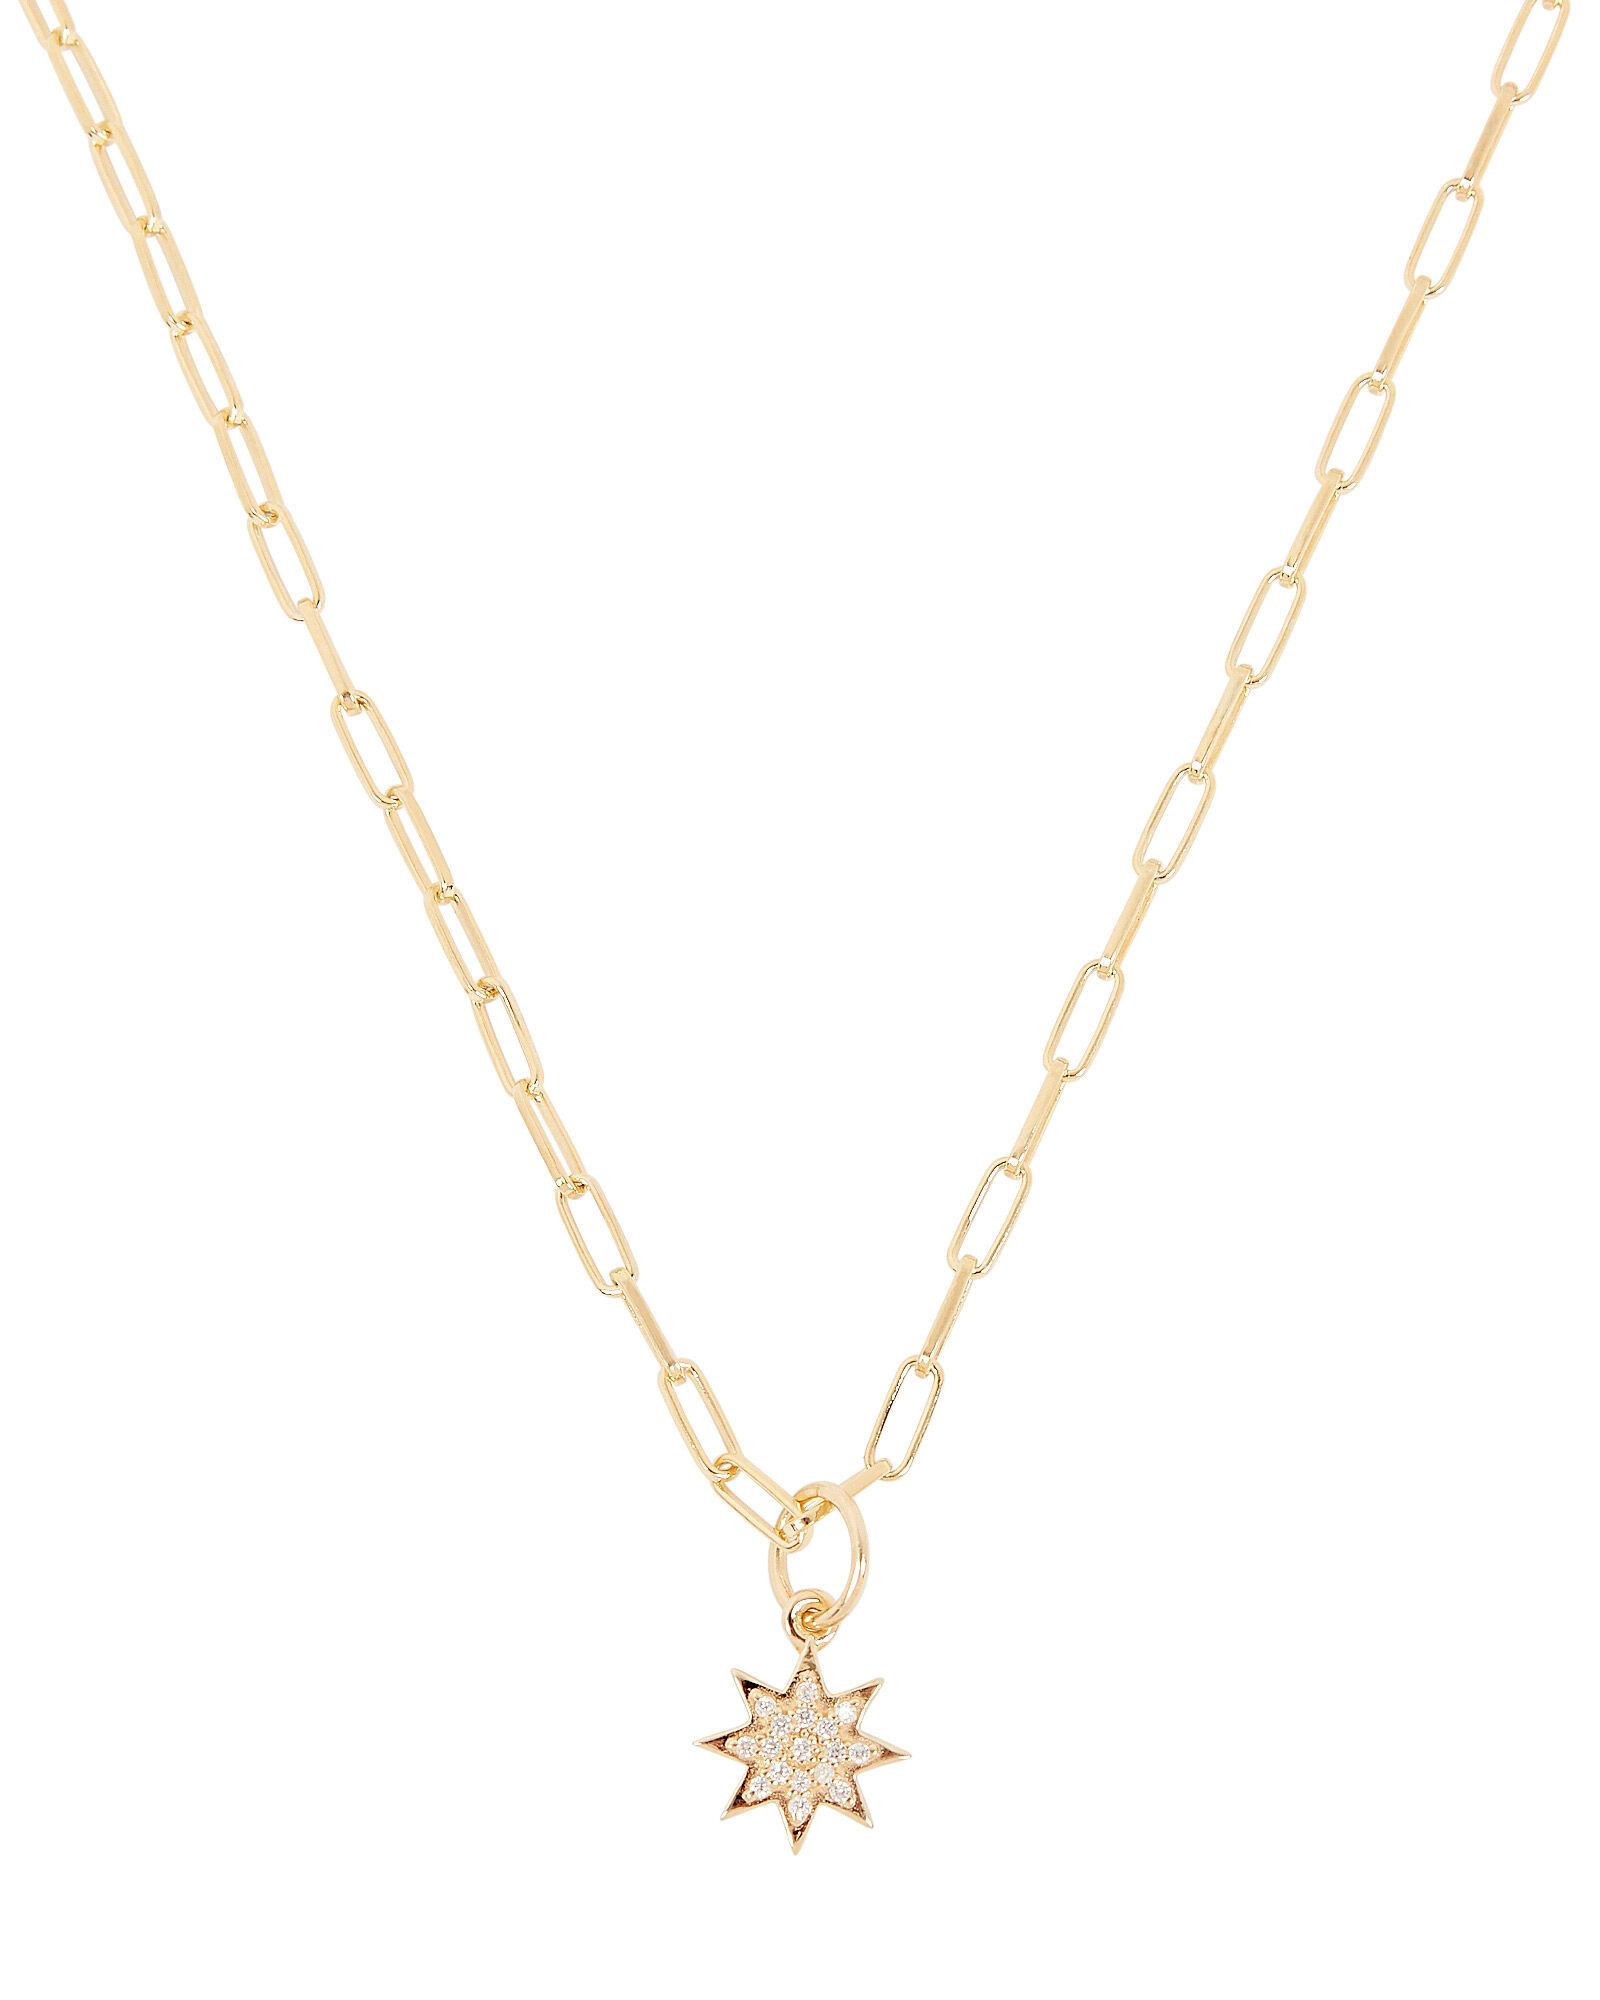 Crystal Star Chain Link Necklace, GOLD, hi-res